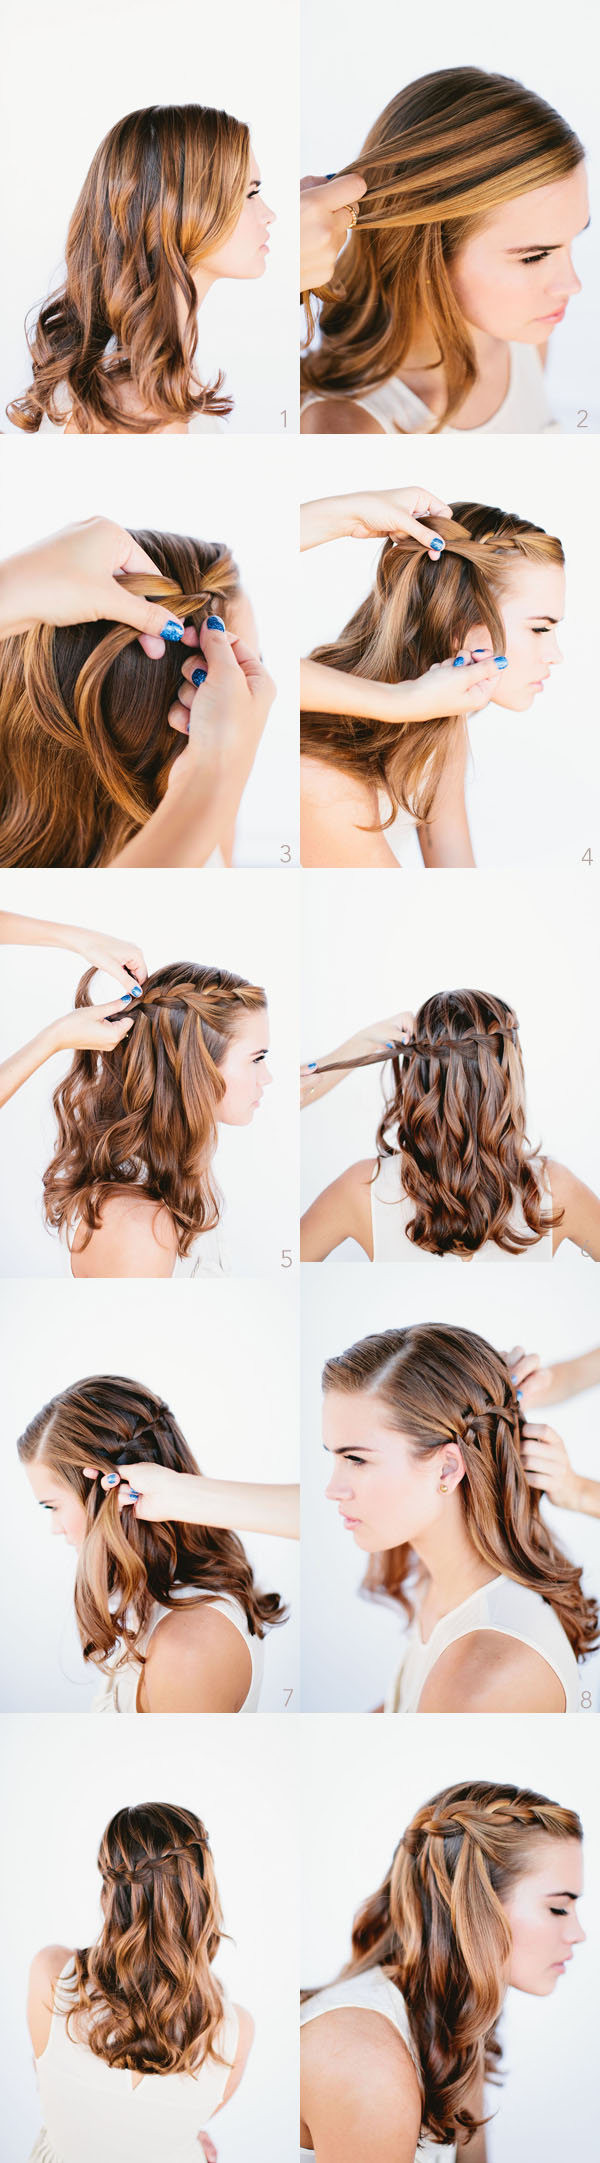 Best ideas about Braid Hairstyles For Long Hair Step By Step . Save or Pin 20 Beautiful Hairstyles for Long Hair Step by Step Now.